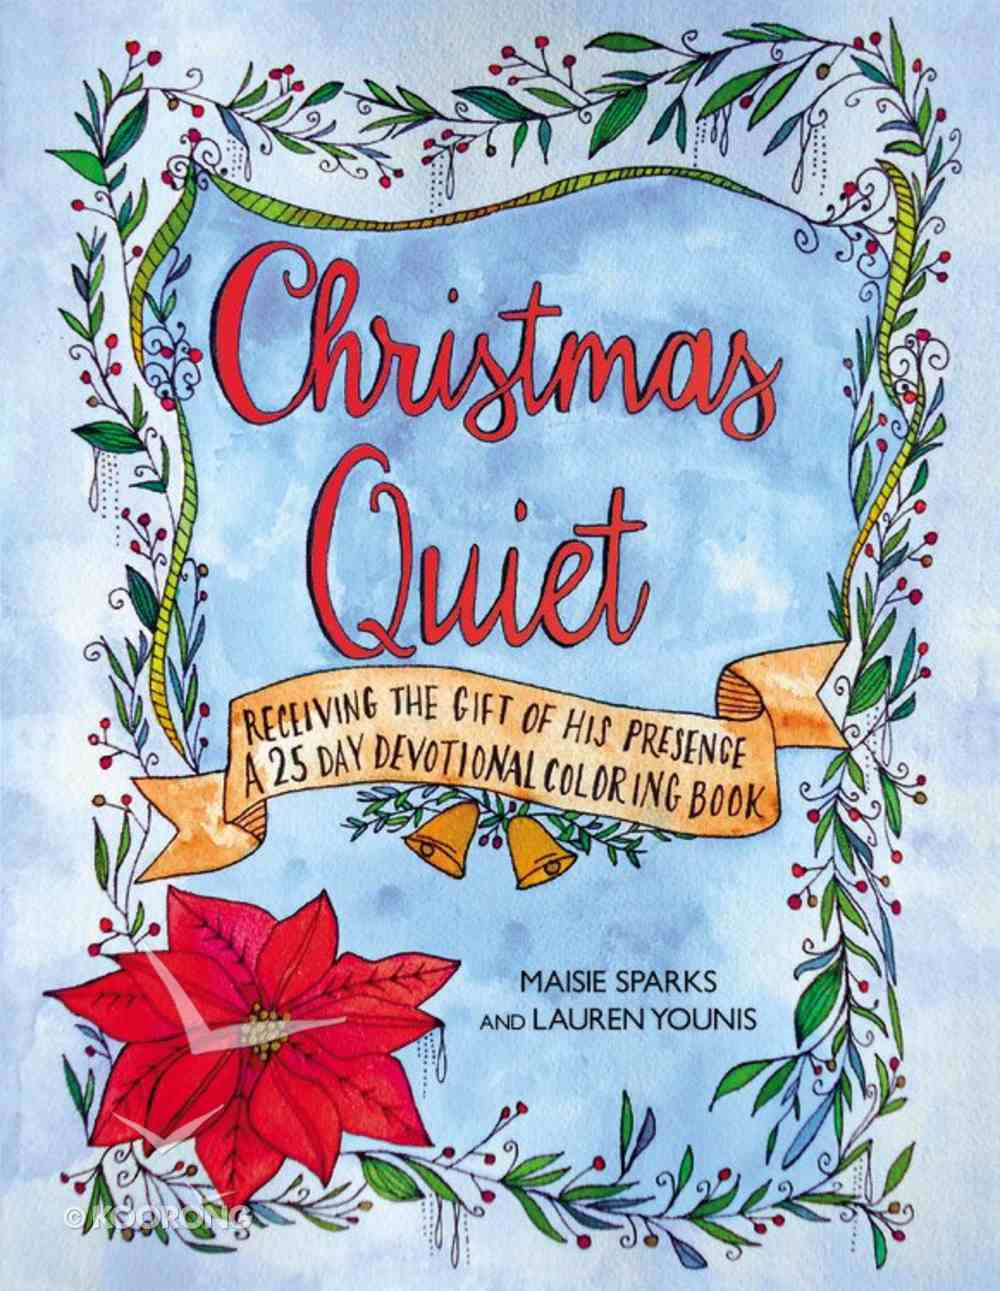 Christmas Quiet Receiving the Gift of His Presence (Adult Coloring Books Series) Paperback